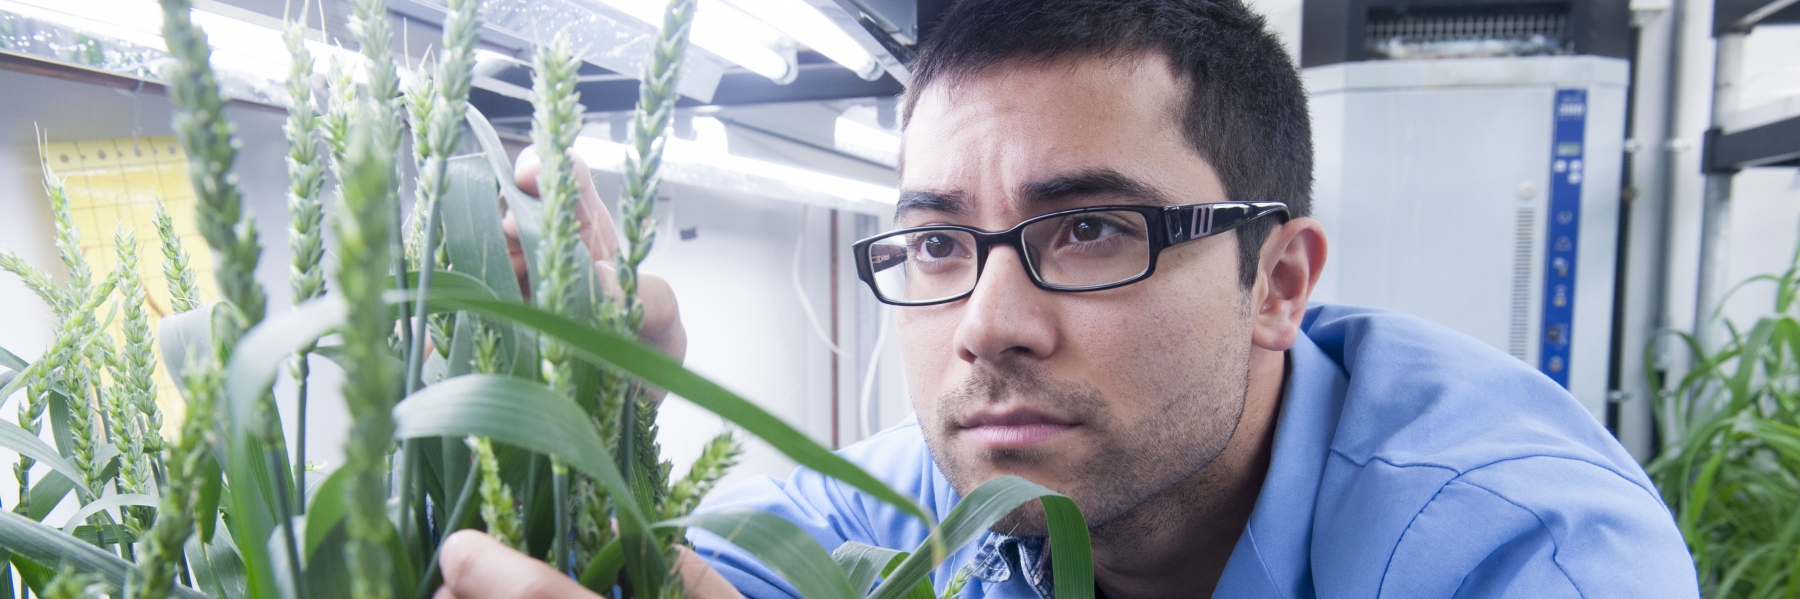 graduate student looking at a plant